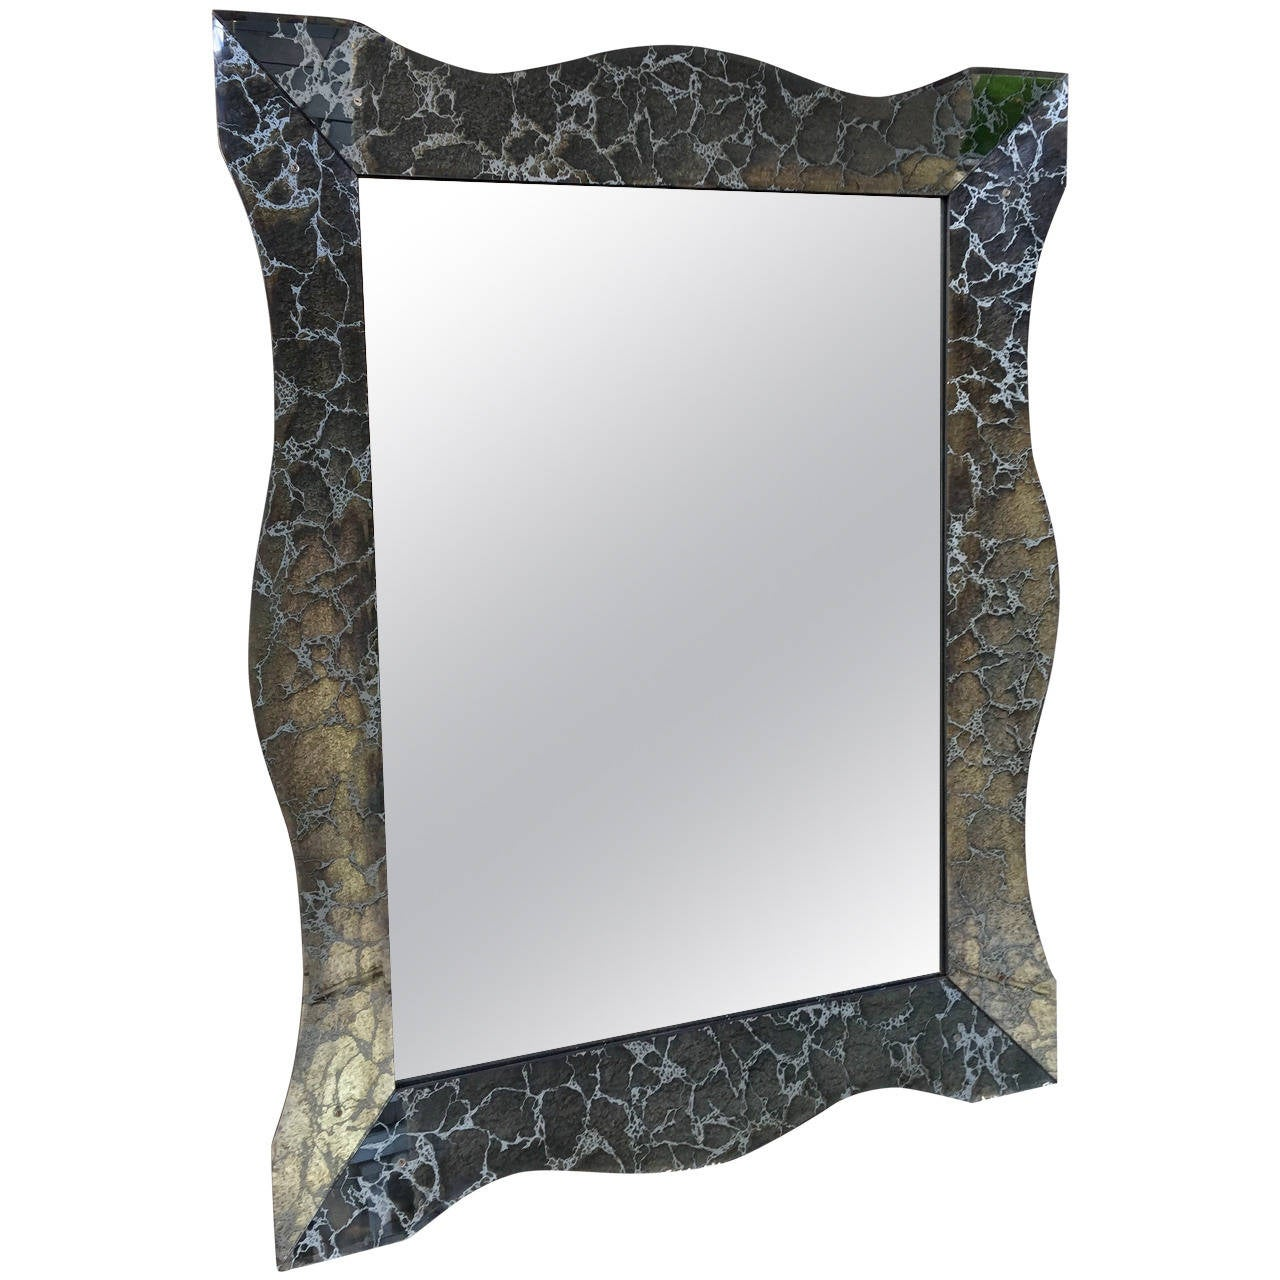 Large Hollywood Regency Charcoal Silver Vein Beveled Mirror